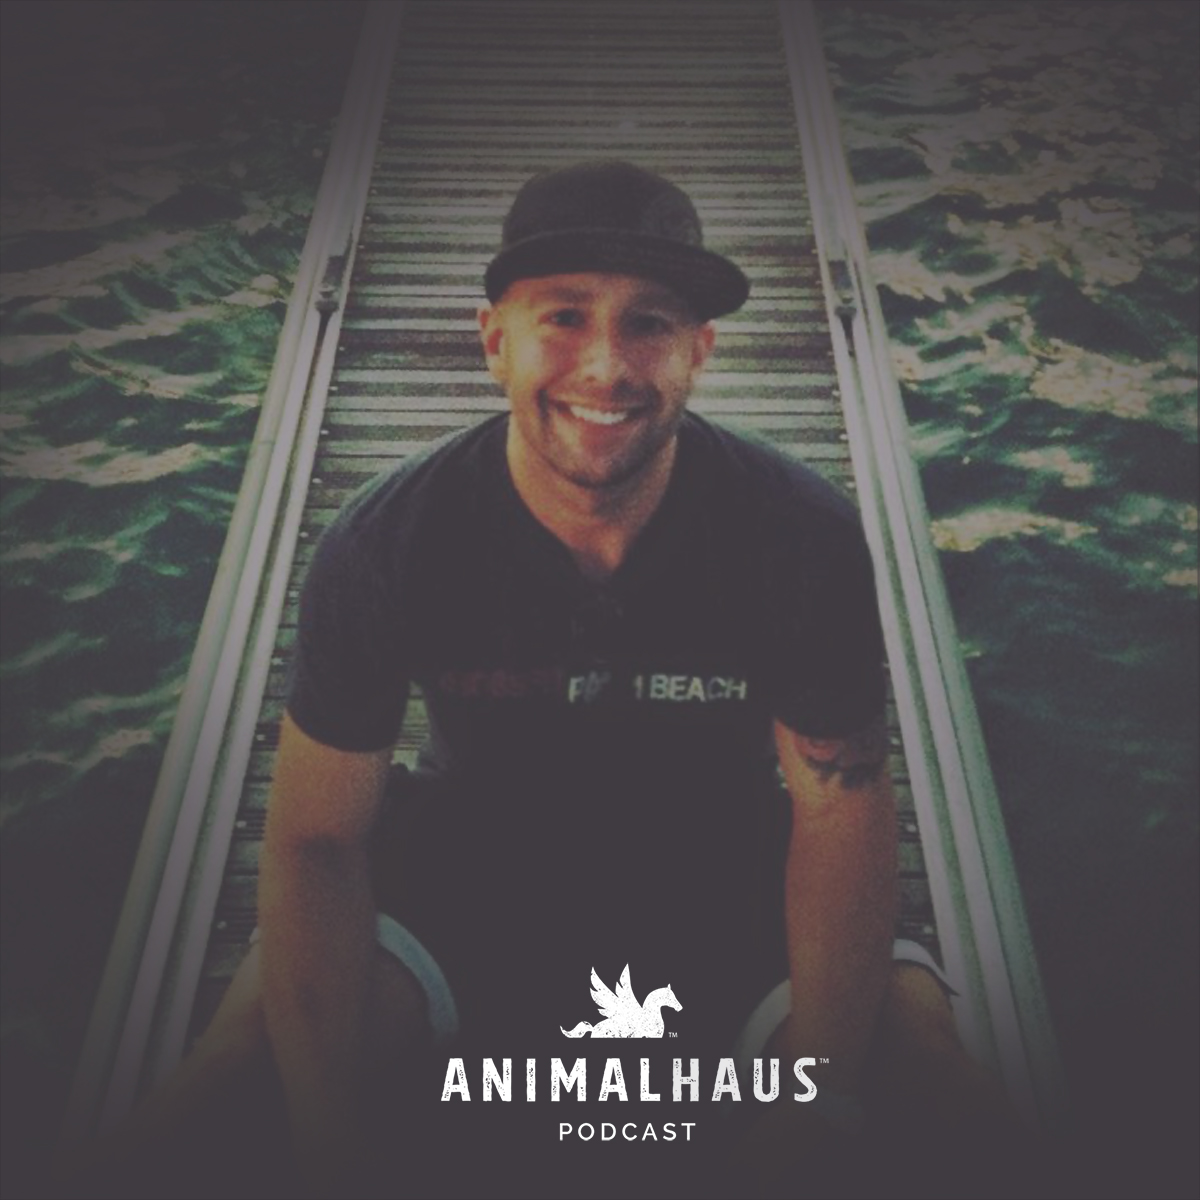 Chris Huewetter social media growth hacker on Animalhaus